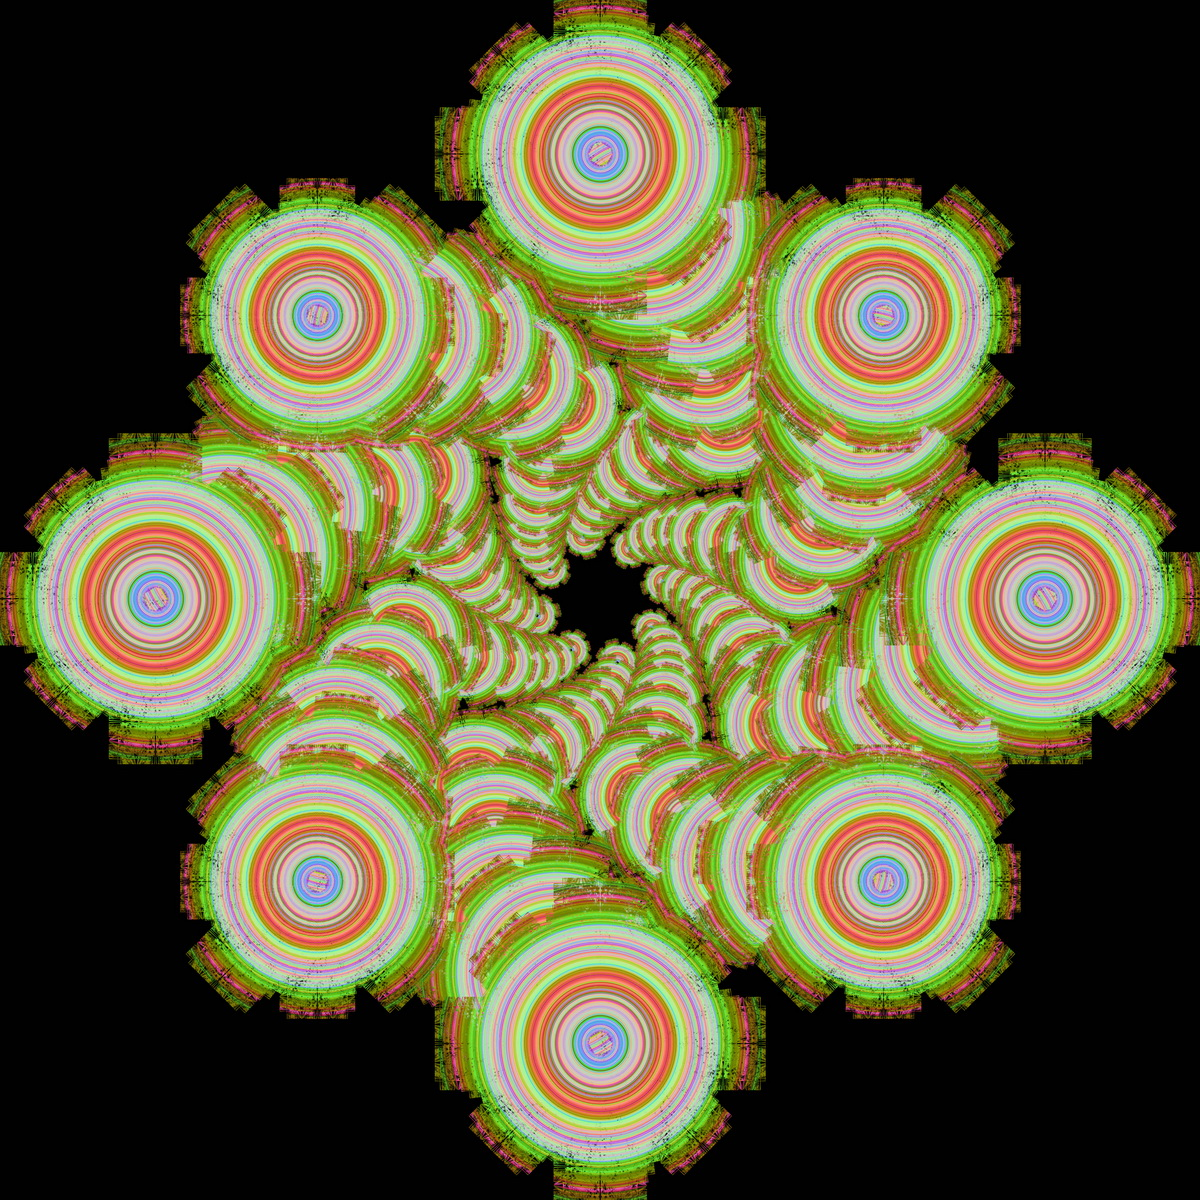 mandalas fractales patterns efectos visuales efectos opticos imagenes efecto visual efecto